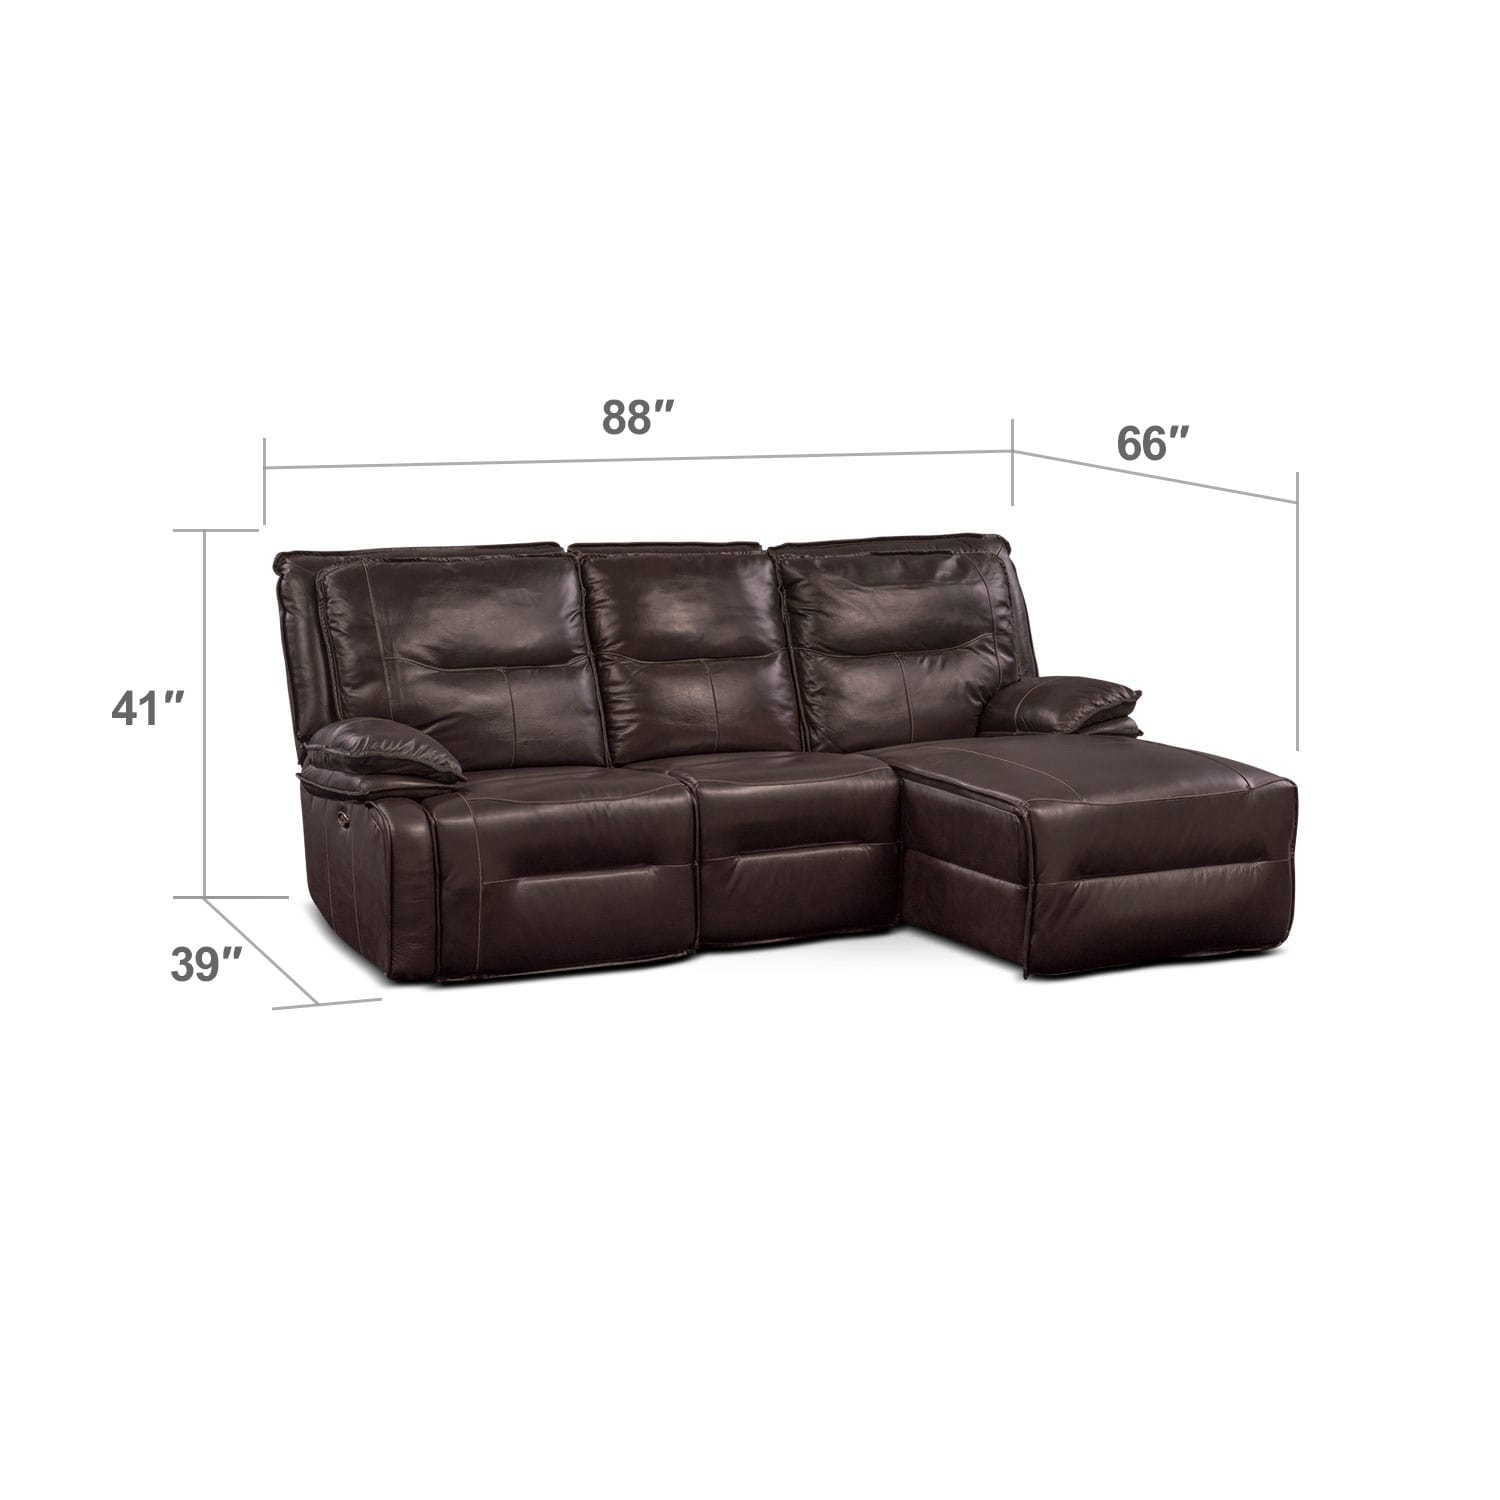 Living Room Furniture - Nikki 3-Piece Power Reclining Sectional with Right-Facing Chaise - Brown